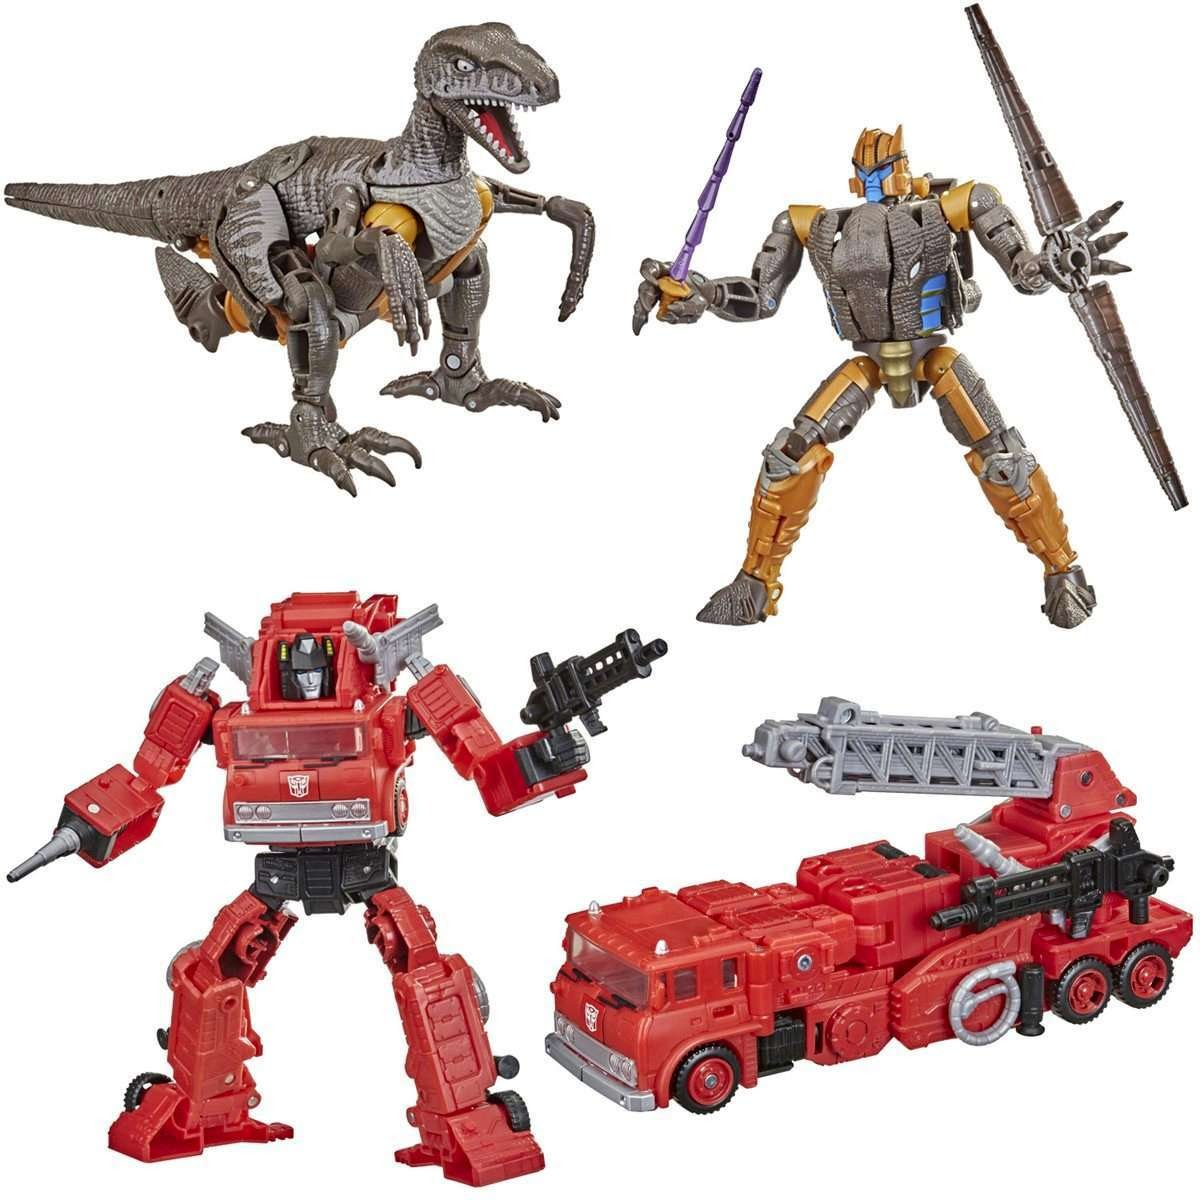 Transformers Generations' Kingdom Voyager Wave 1 and Wave 2